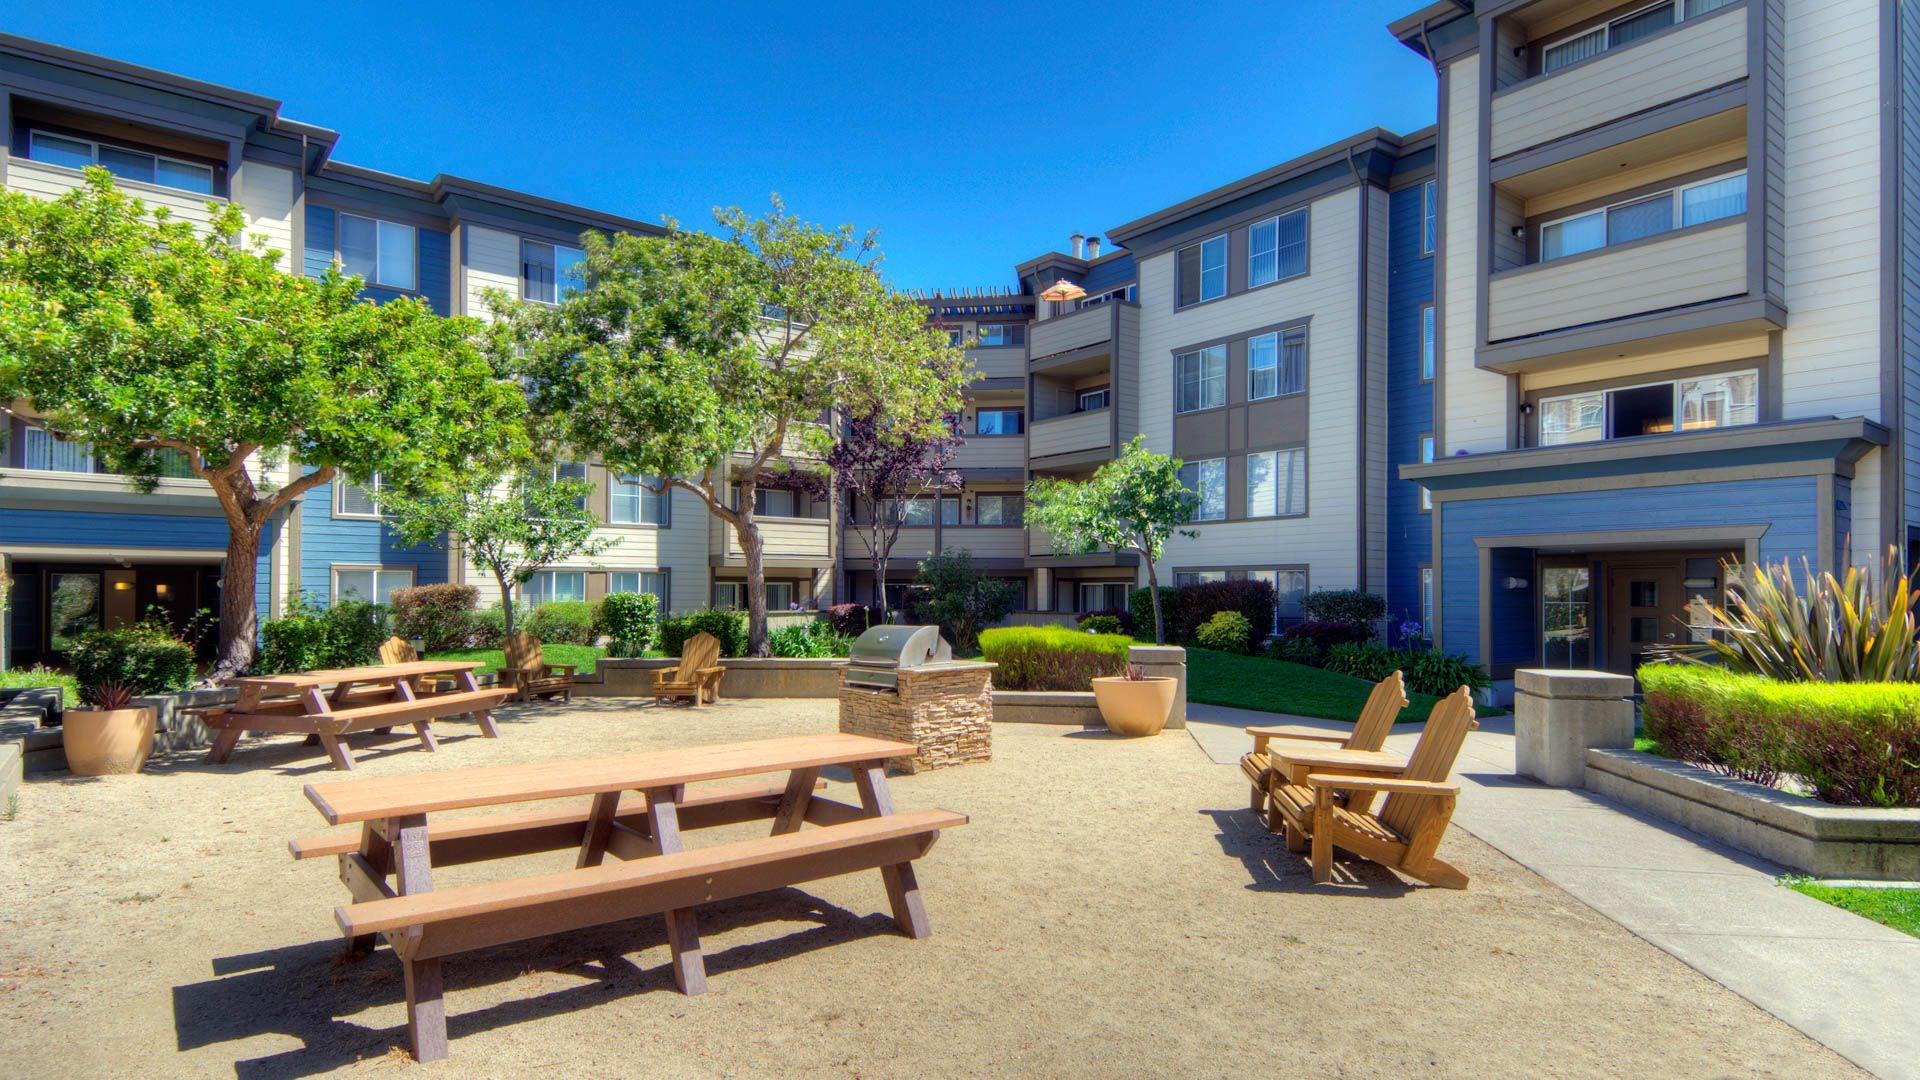 Artistry Emeryville Apartments - Courtyard